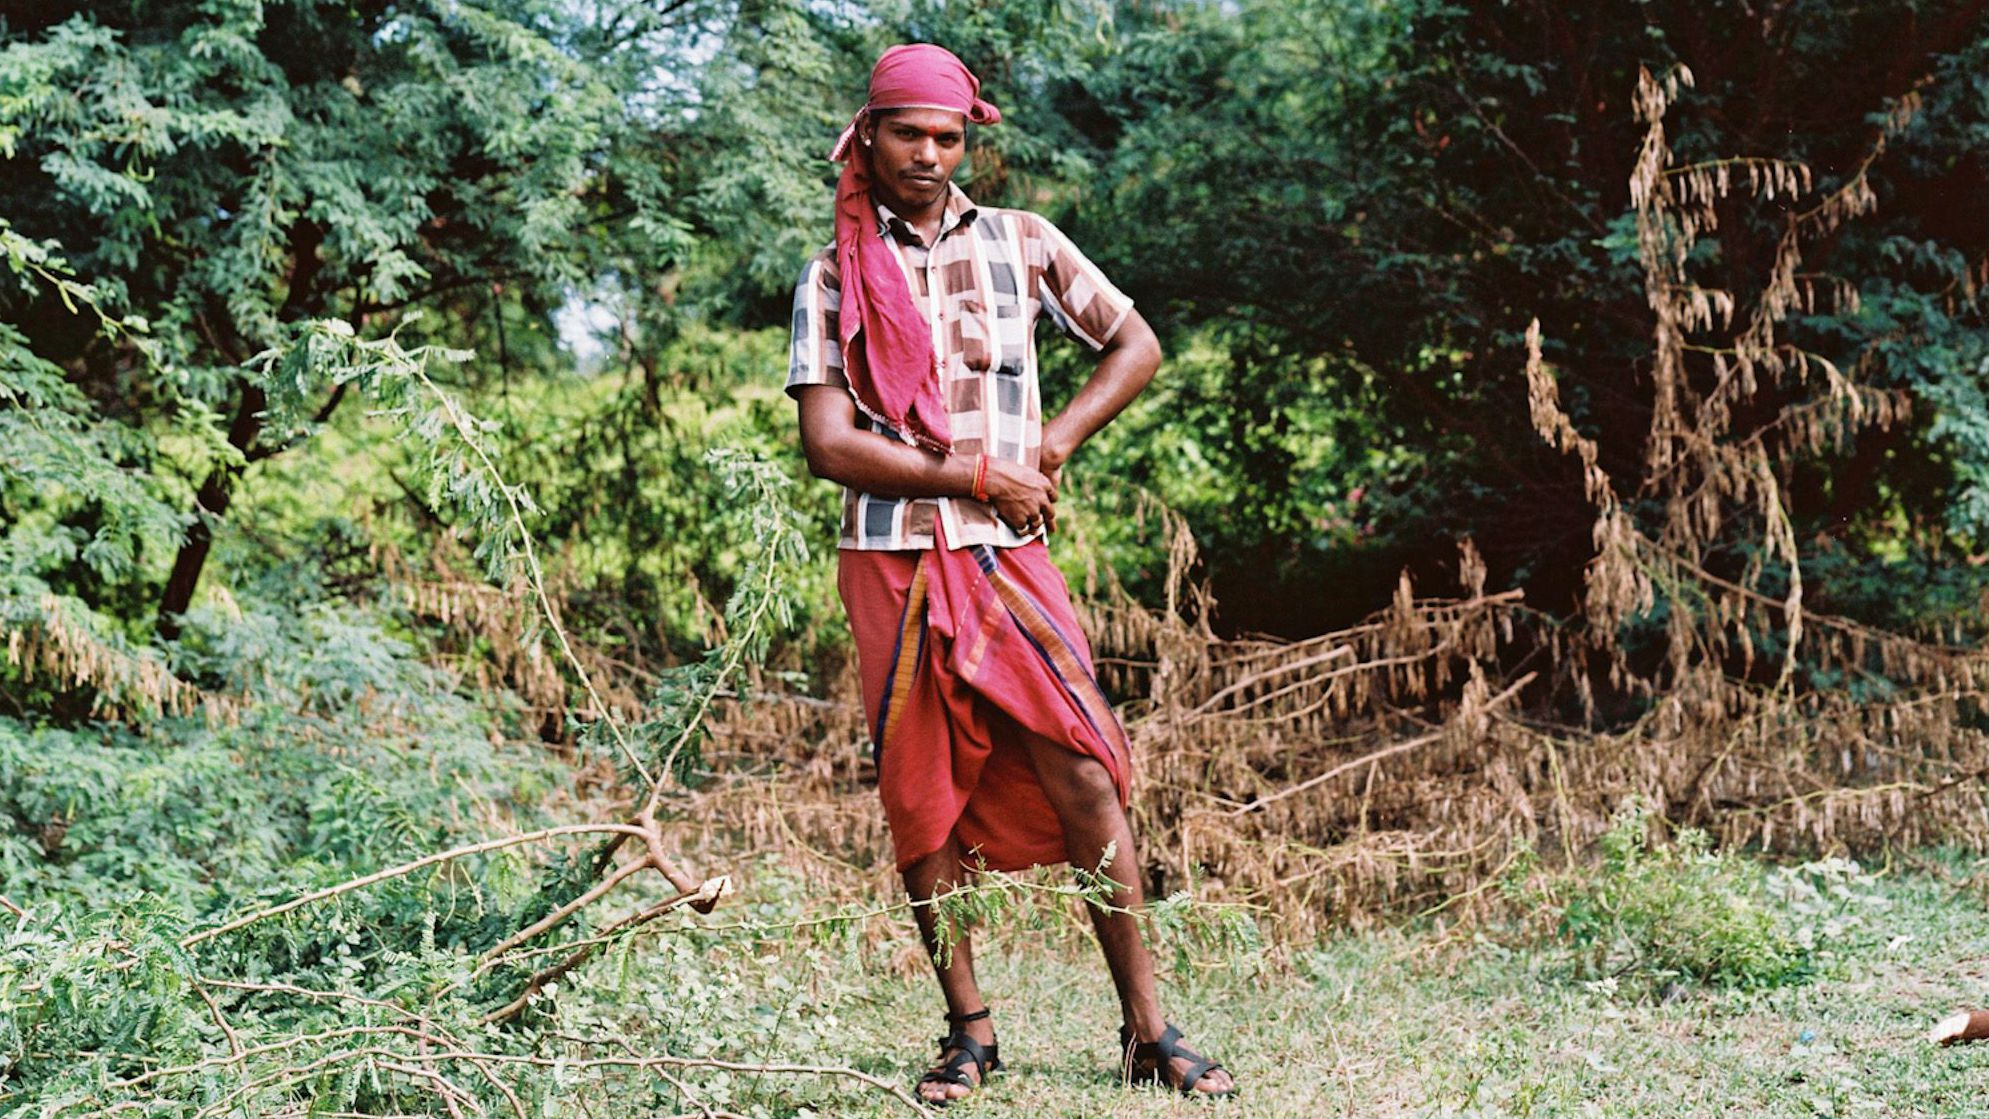 Chitra, a kothi priest from outside of Cuddalore, poses for a portrait while cutting down wood used for cooking. Many kothis choose to do this kind of work – which is tradi- tionally done by women – as another way to express their female identity. November 2013.